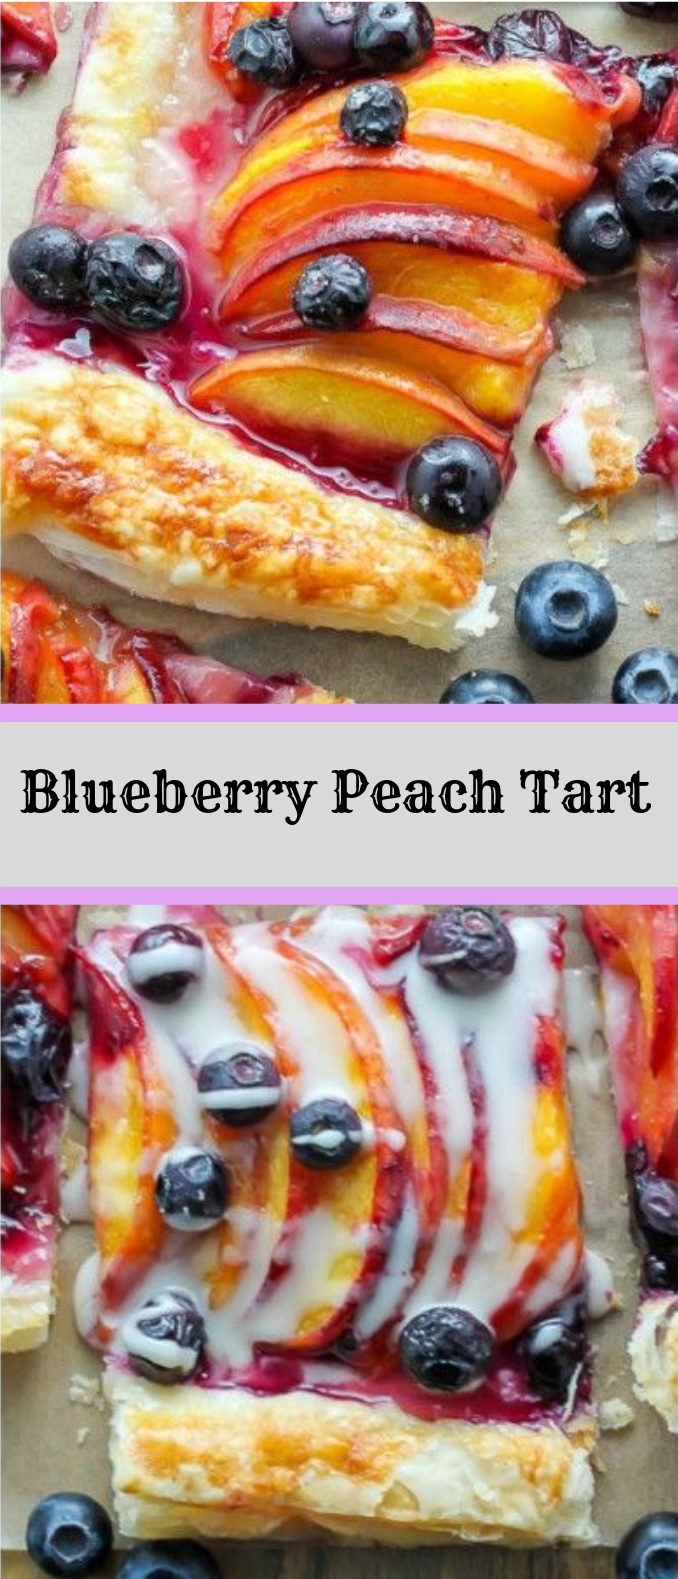 Easy Blueberry Peach Tart with Vanilla Glaze #dessert #cake